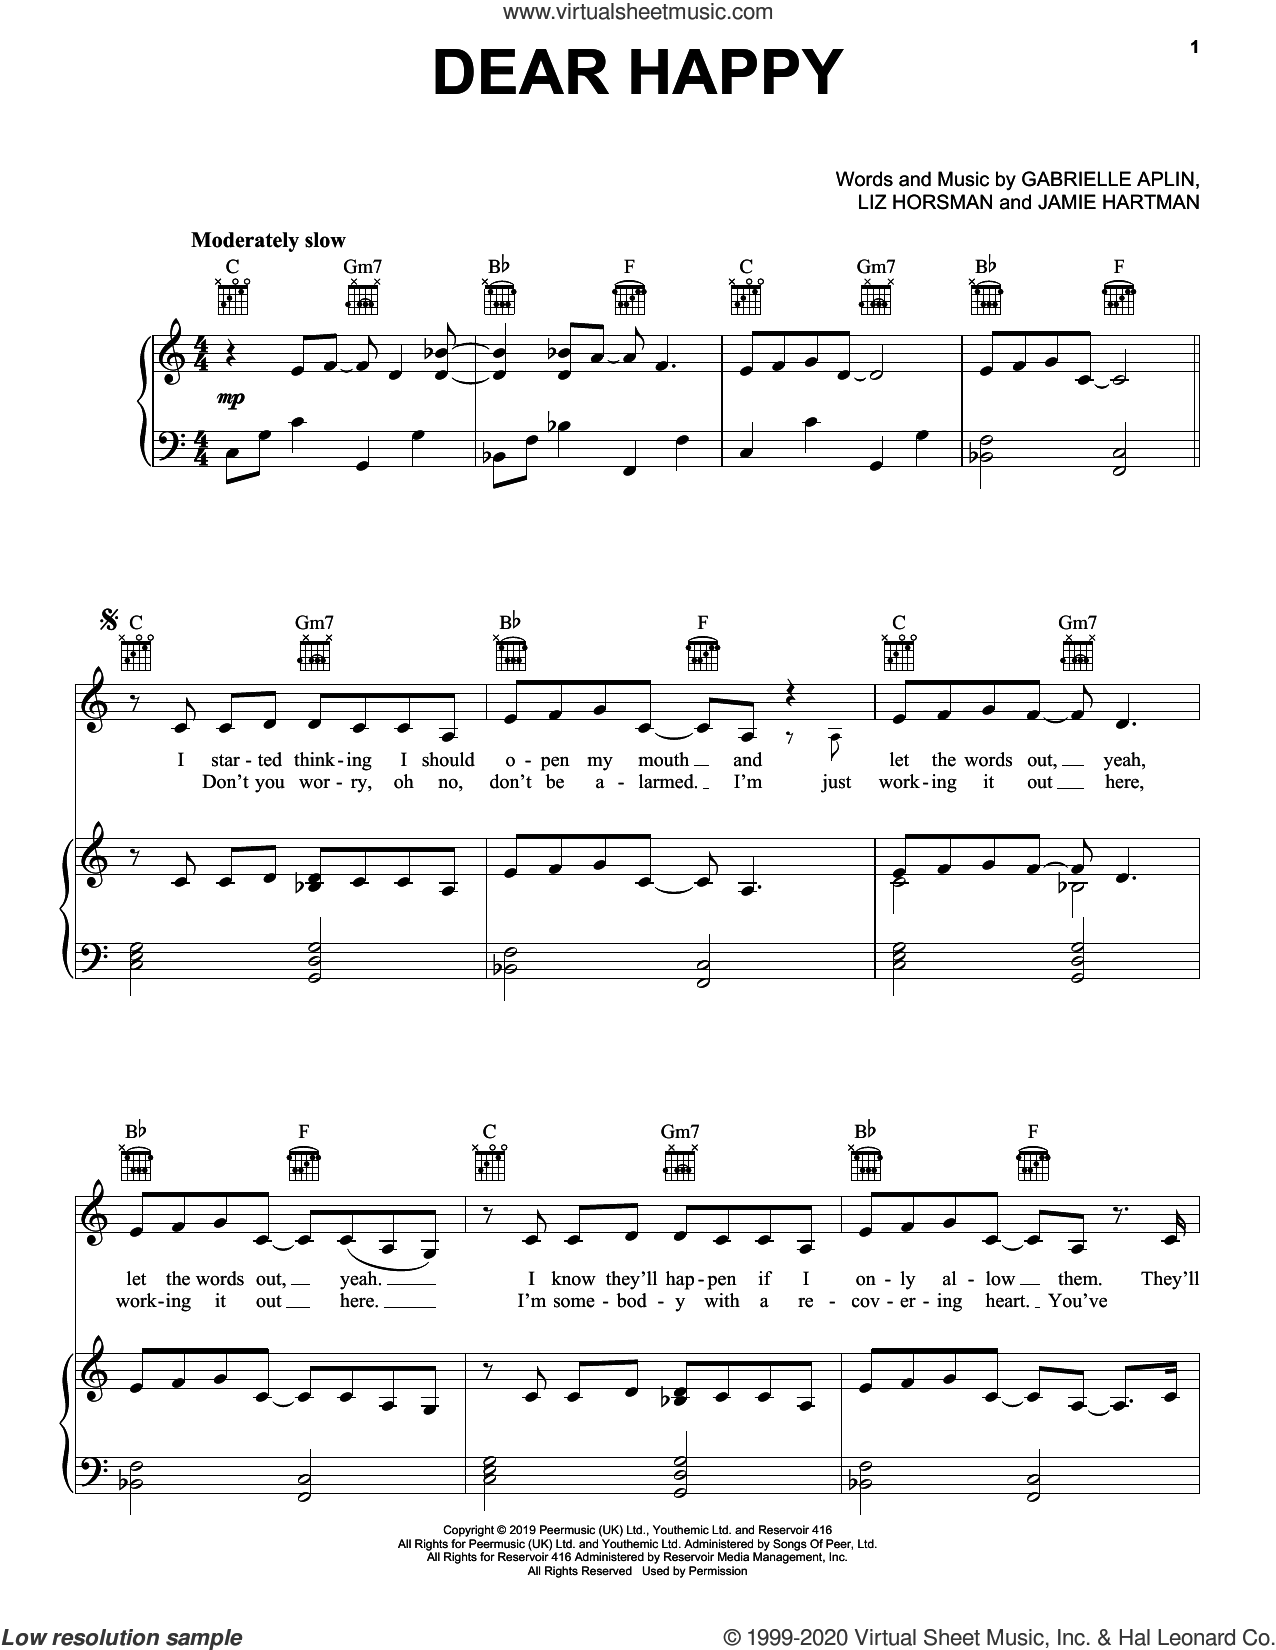 Dear Happy sheet music for voice, piano or guitar by Gabrielle Aplin, Jamie Hartman, Liz Horsman and Michael Spencer, intermediate skill level